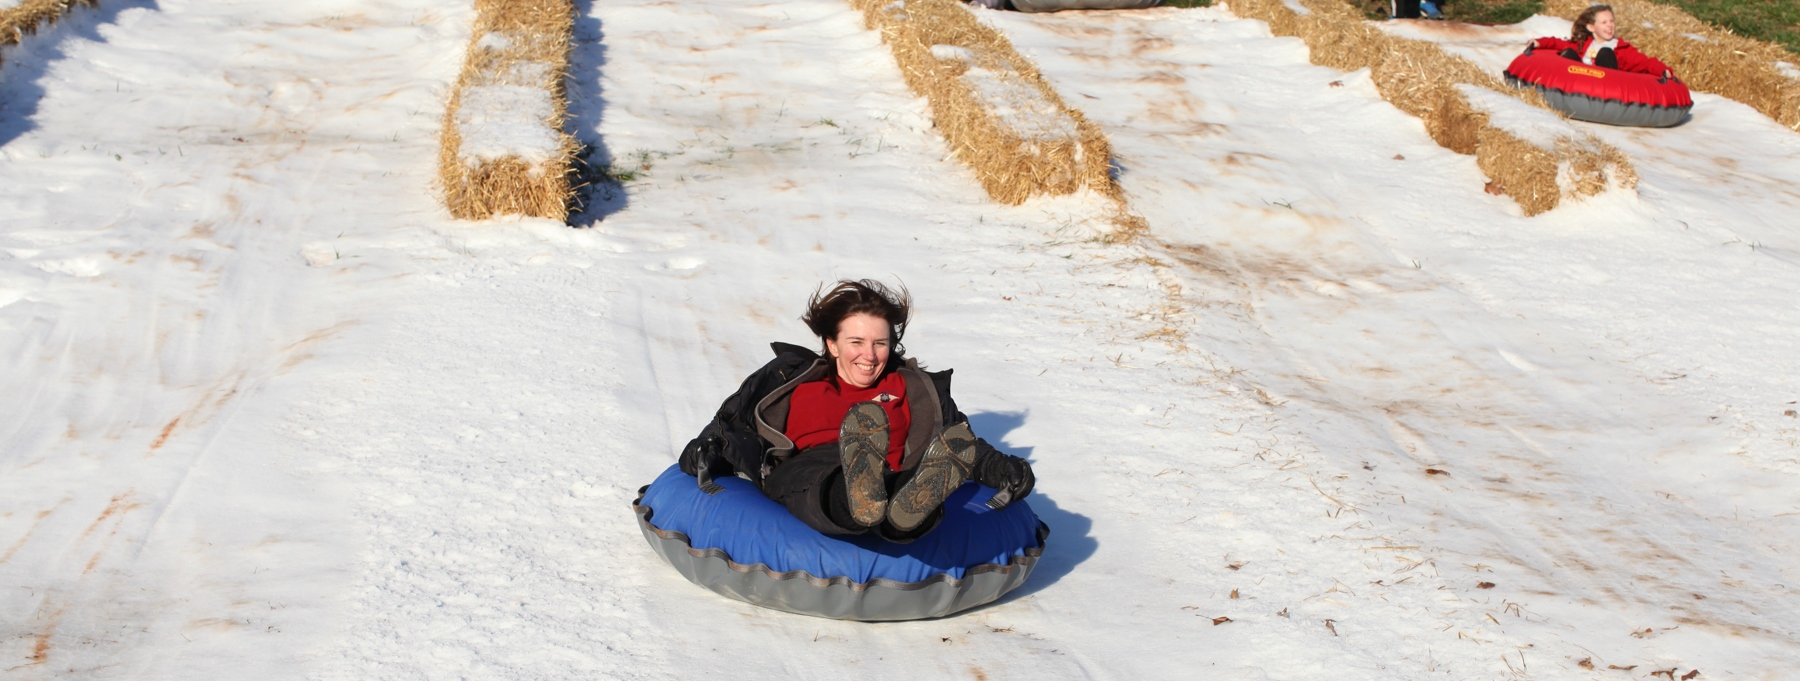 Winter Wonderland At Bond Park Town Of Cary - The best sledding hills in north america